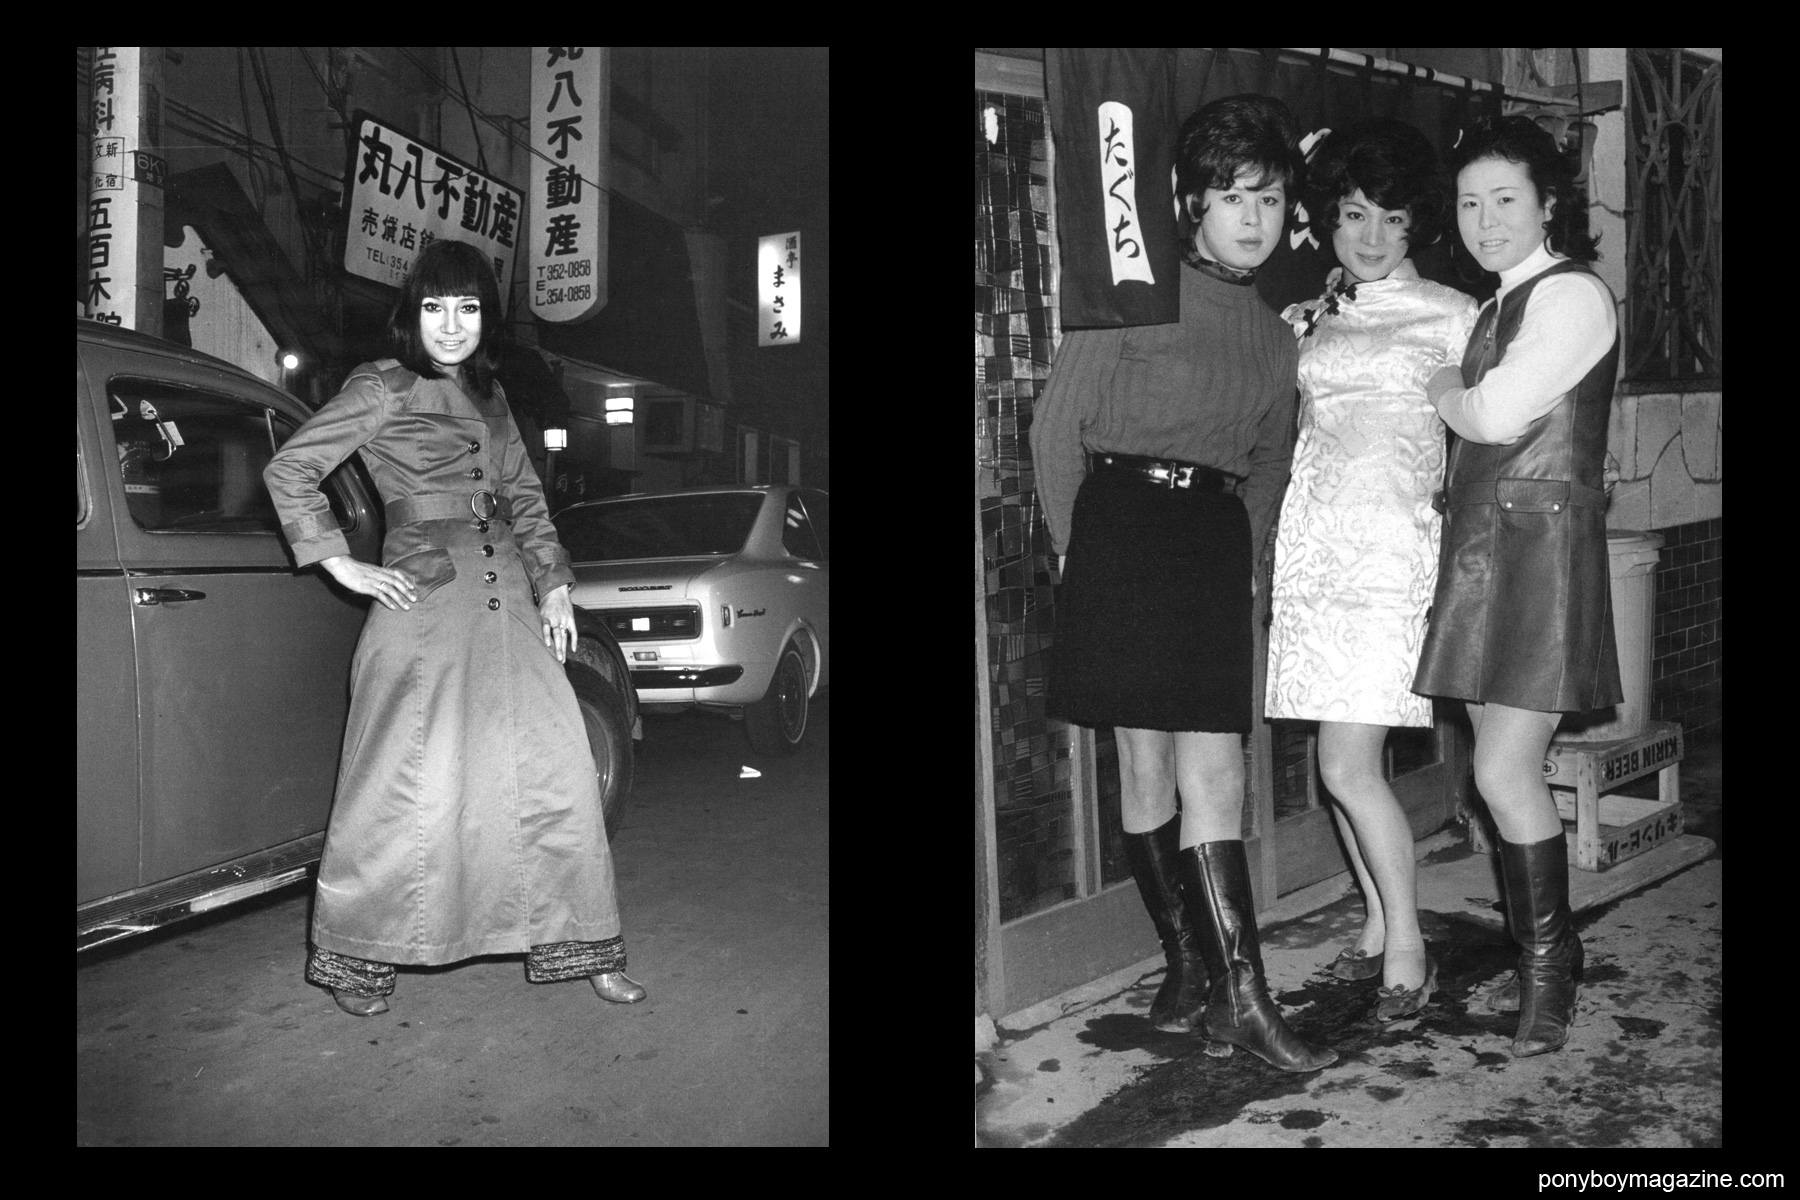 Transvestites in 1960's Tokyo in the book Gangs of Kabukicho by photographer Watanabe Katsumi.